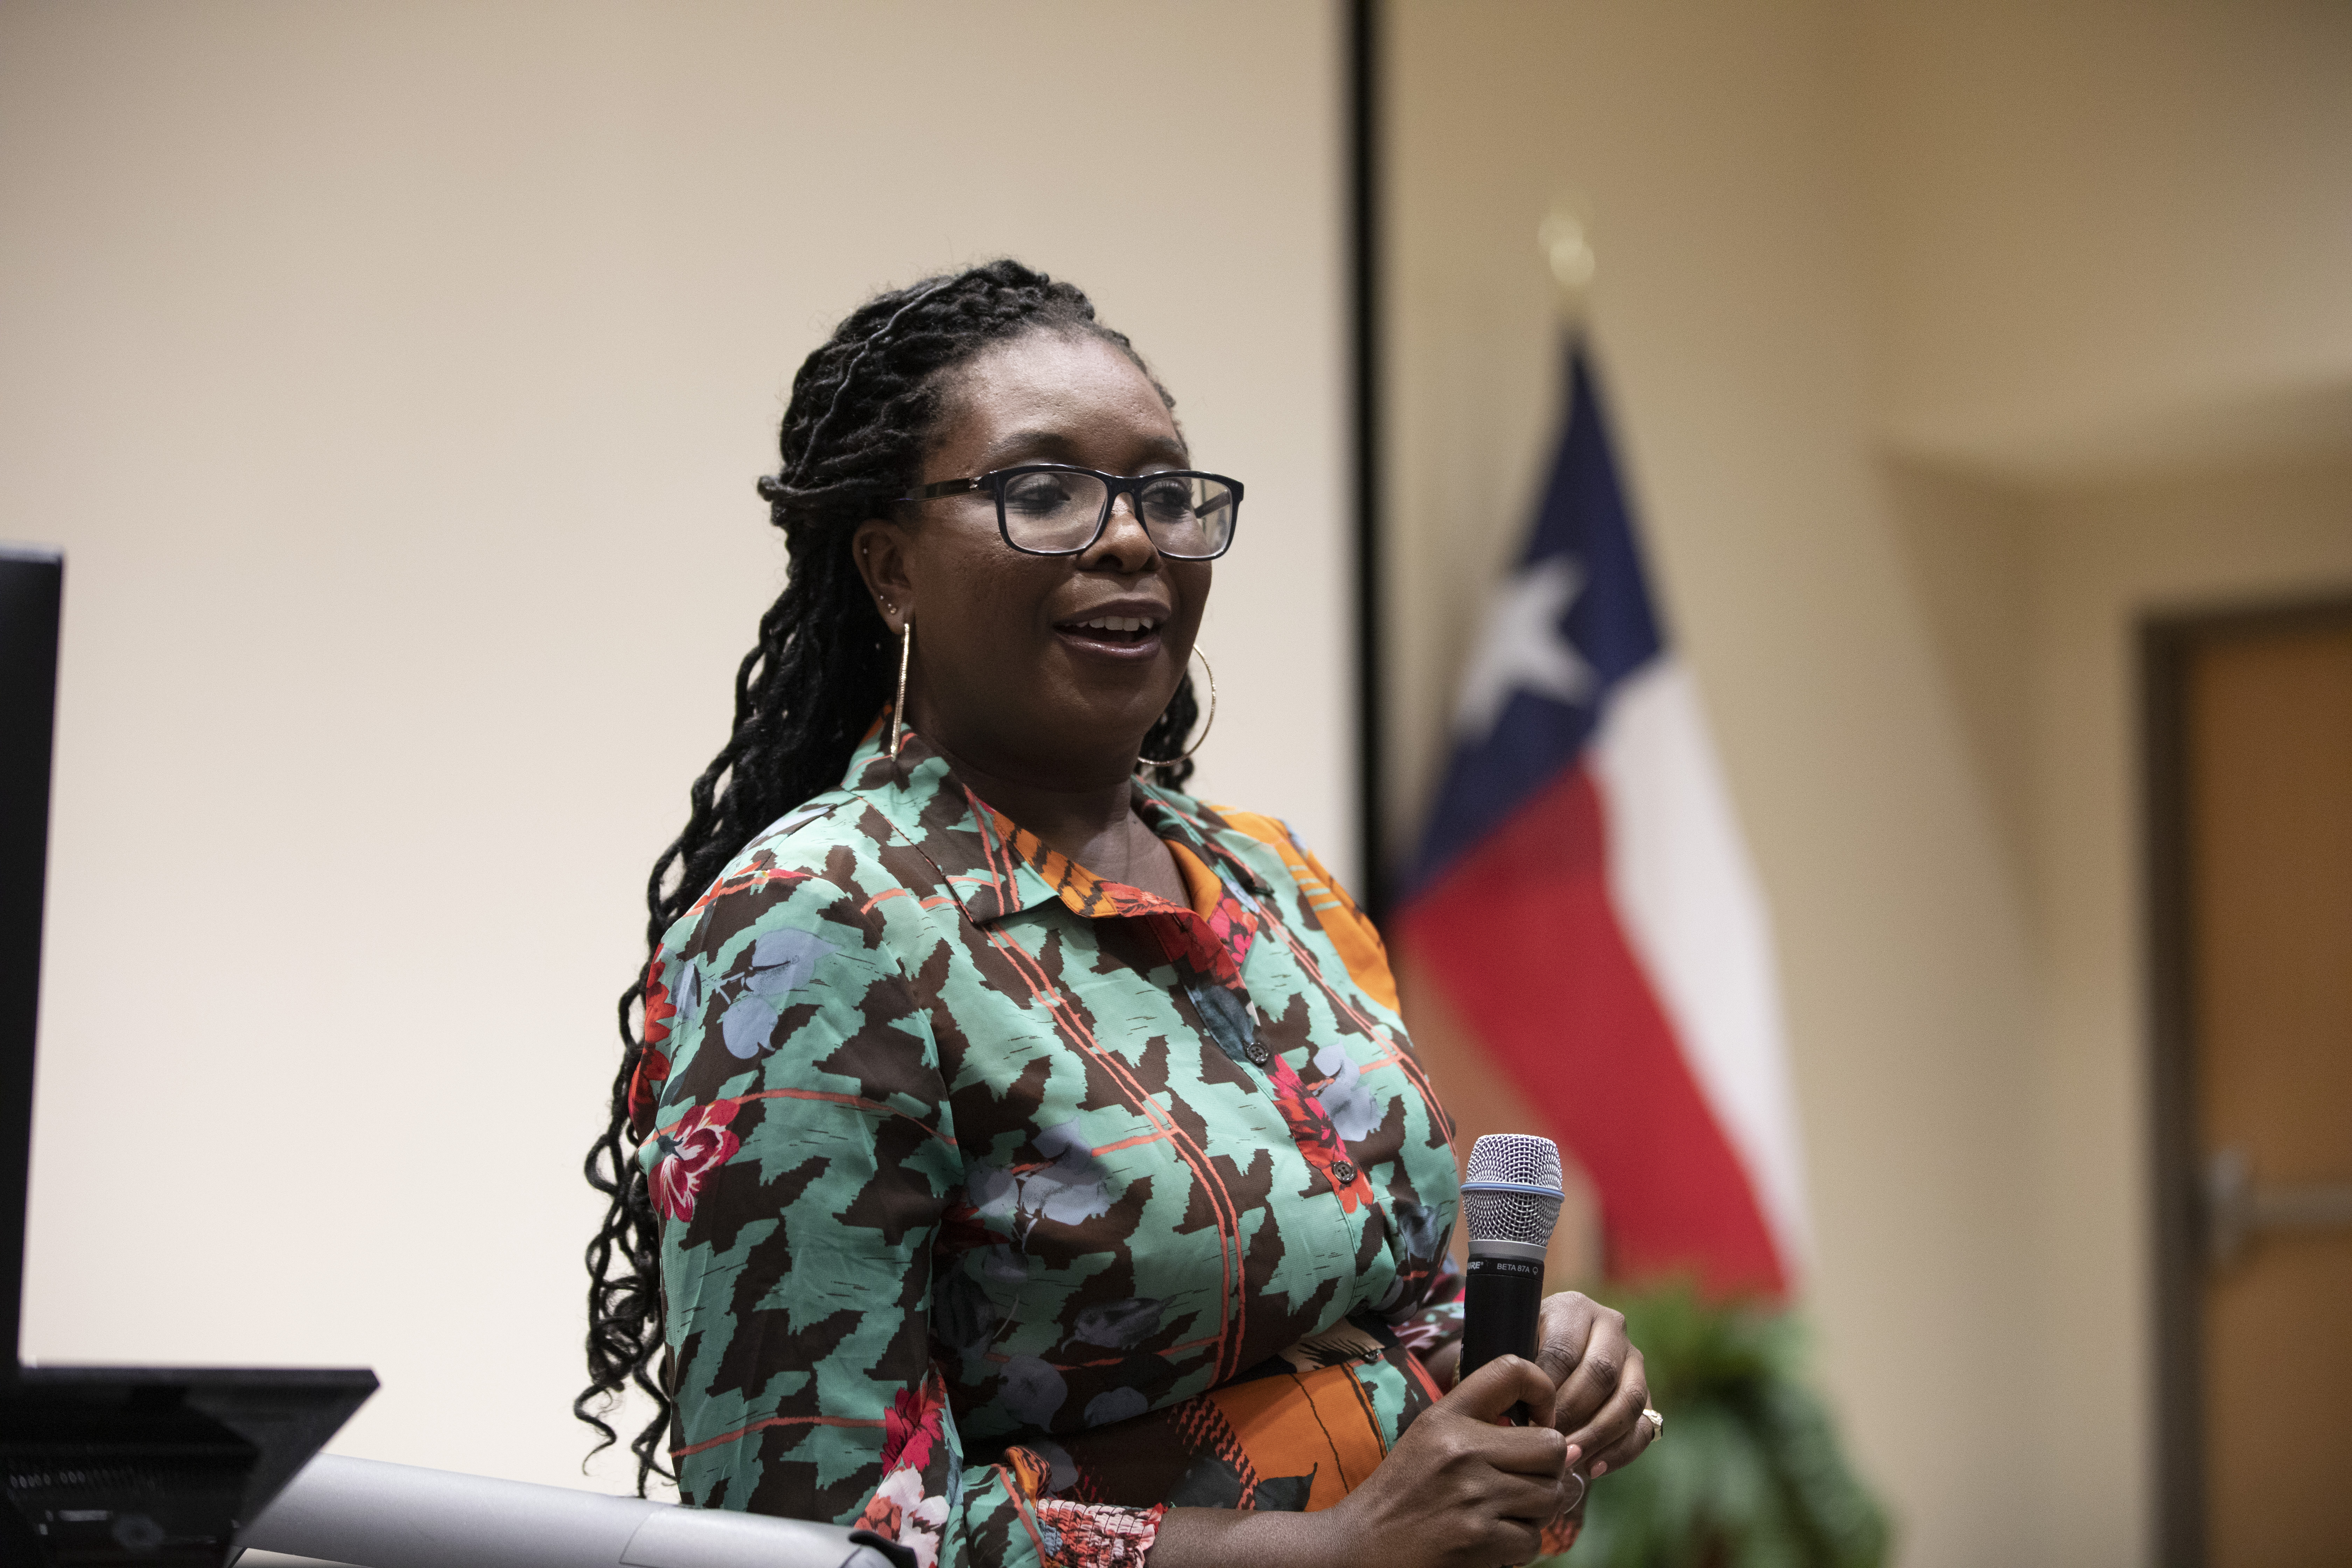 Aba Blankson visited Moody College and discussed her role overseeing internal and external plans related to brand management, public relations and marketing for the NAACP.